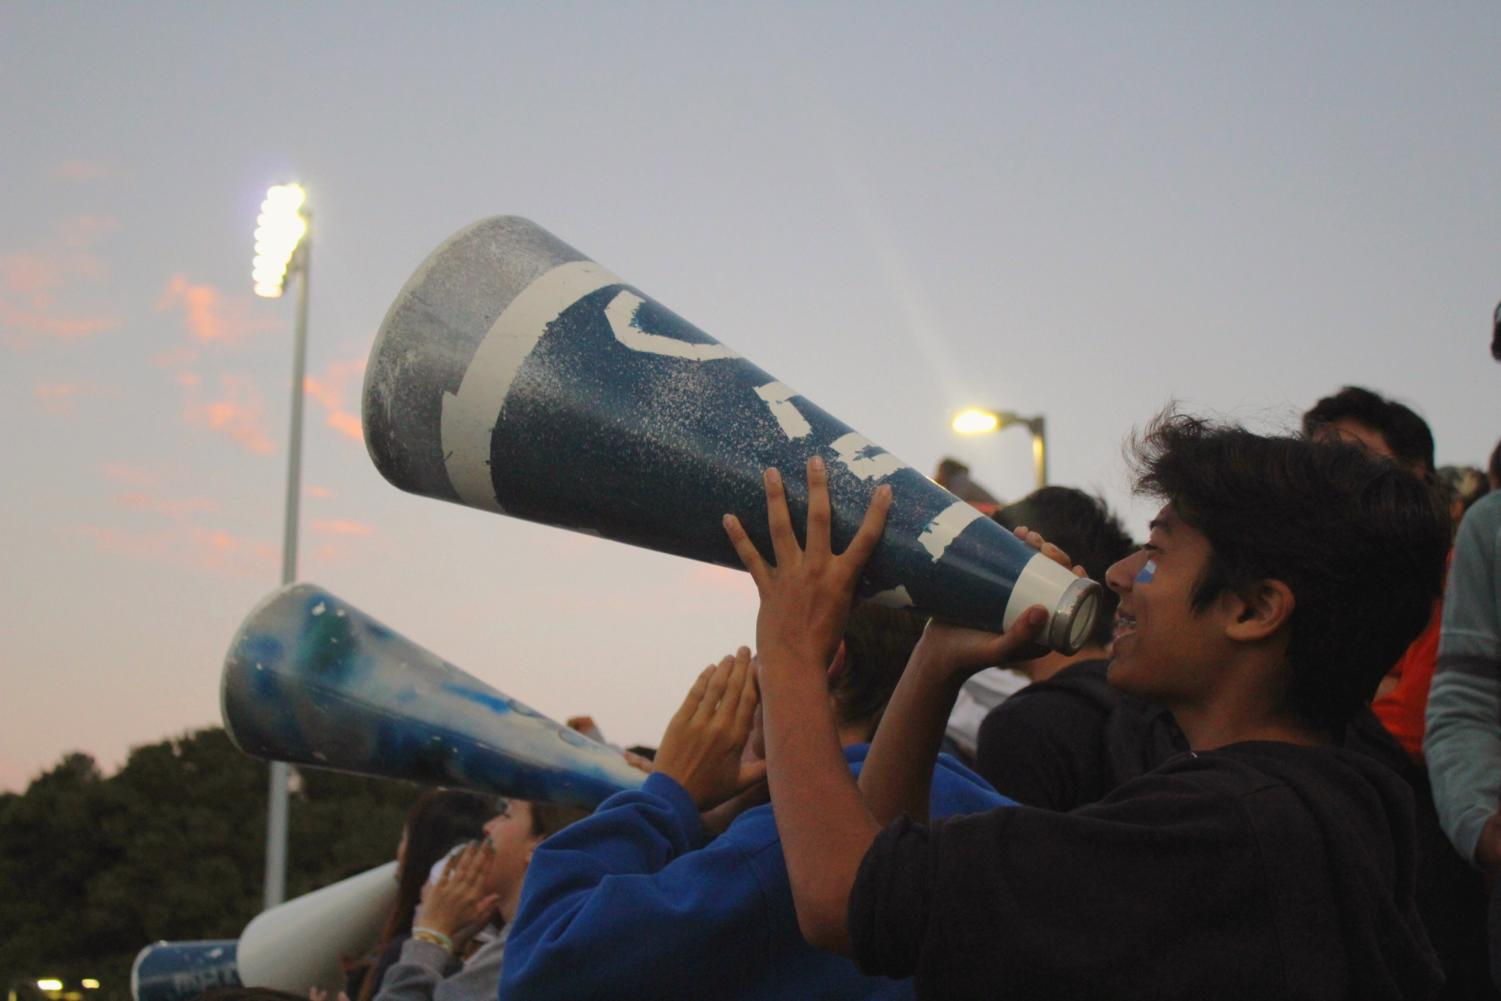 The Screamin' Scots use megaphones to cheer for the football team and raise spirit.